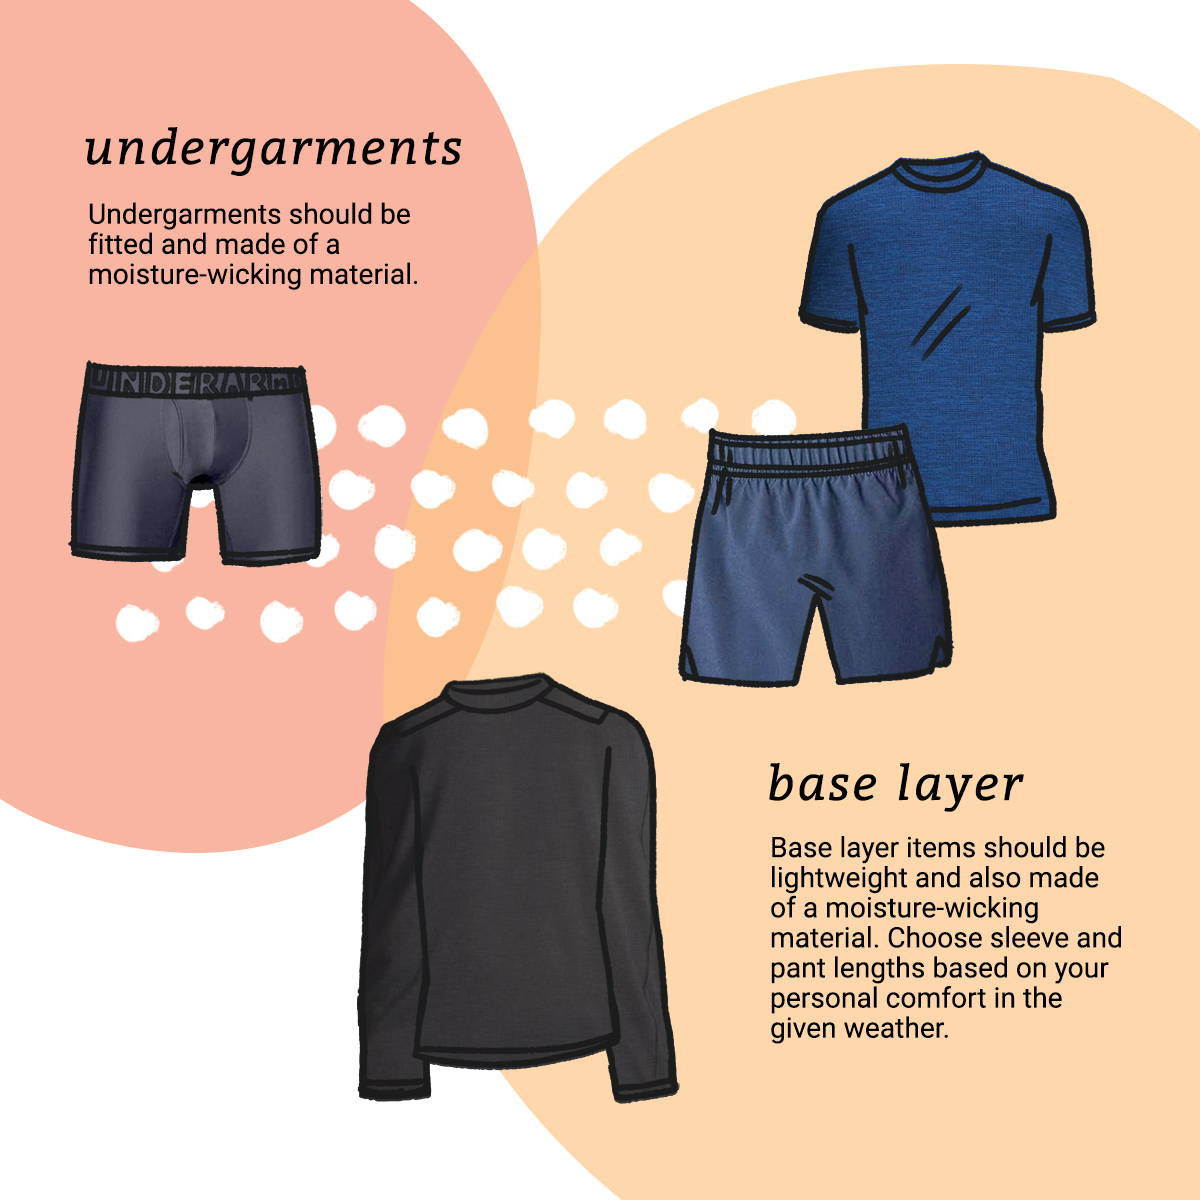 Undergarments should be fitted and made of a moisture-wicking material. Base layer items should be lightweight and also made of a moisture-wicking material. Choose sleeve and pant lengths based on your personal comfort in the given weather.